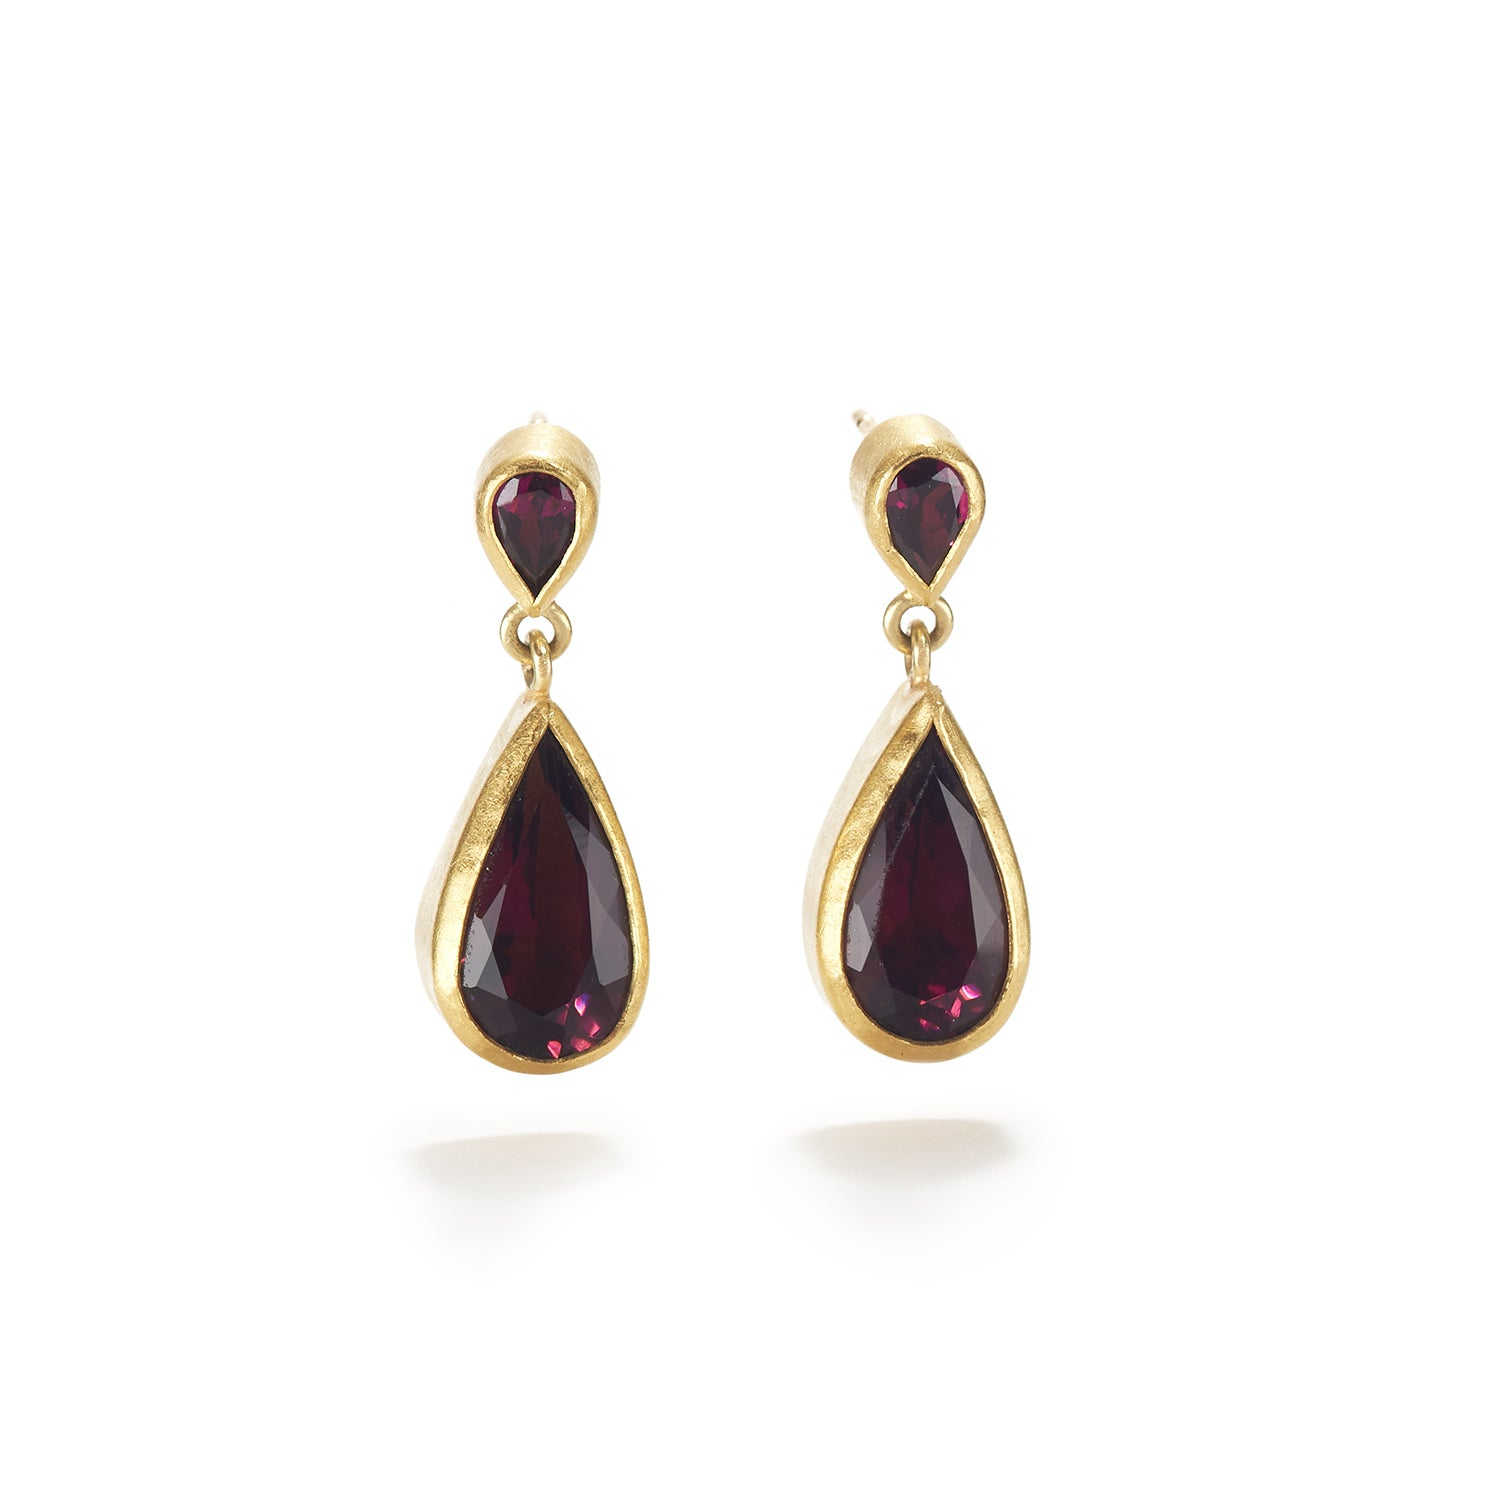 Two Garnet Drop Earrings